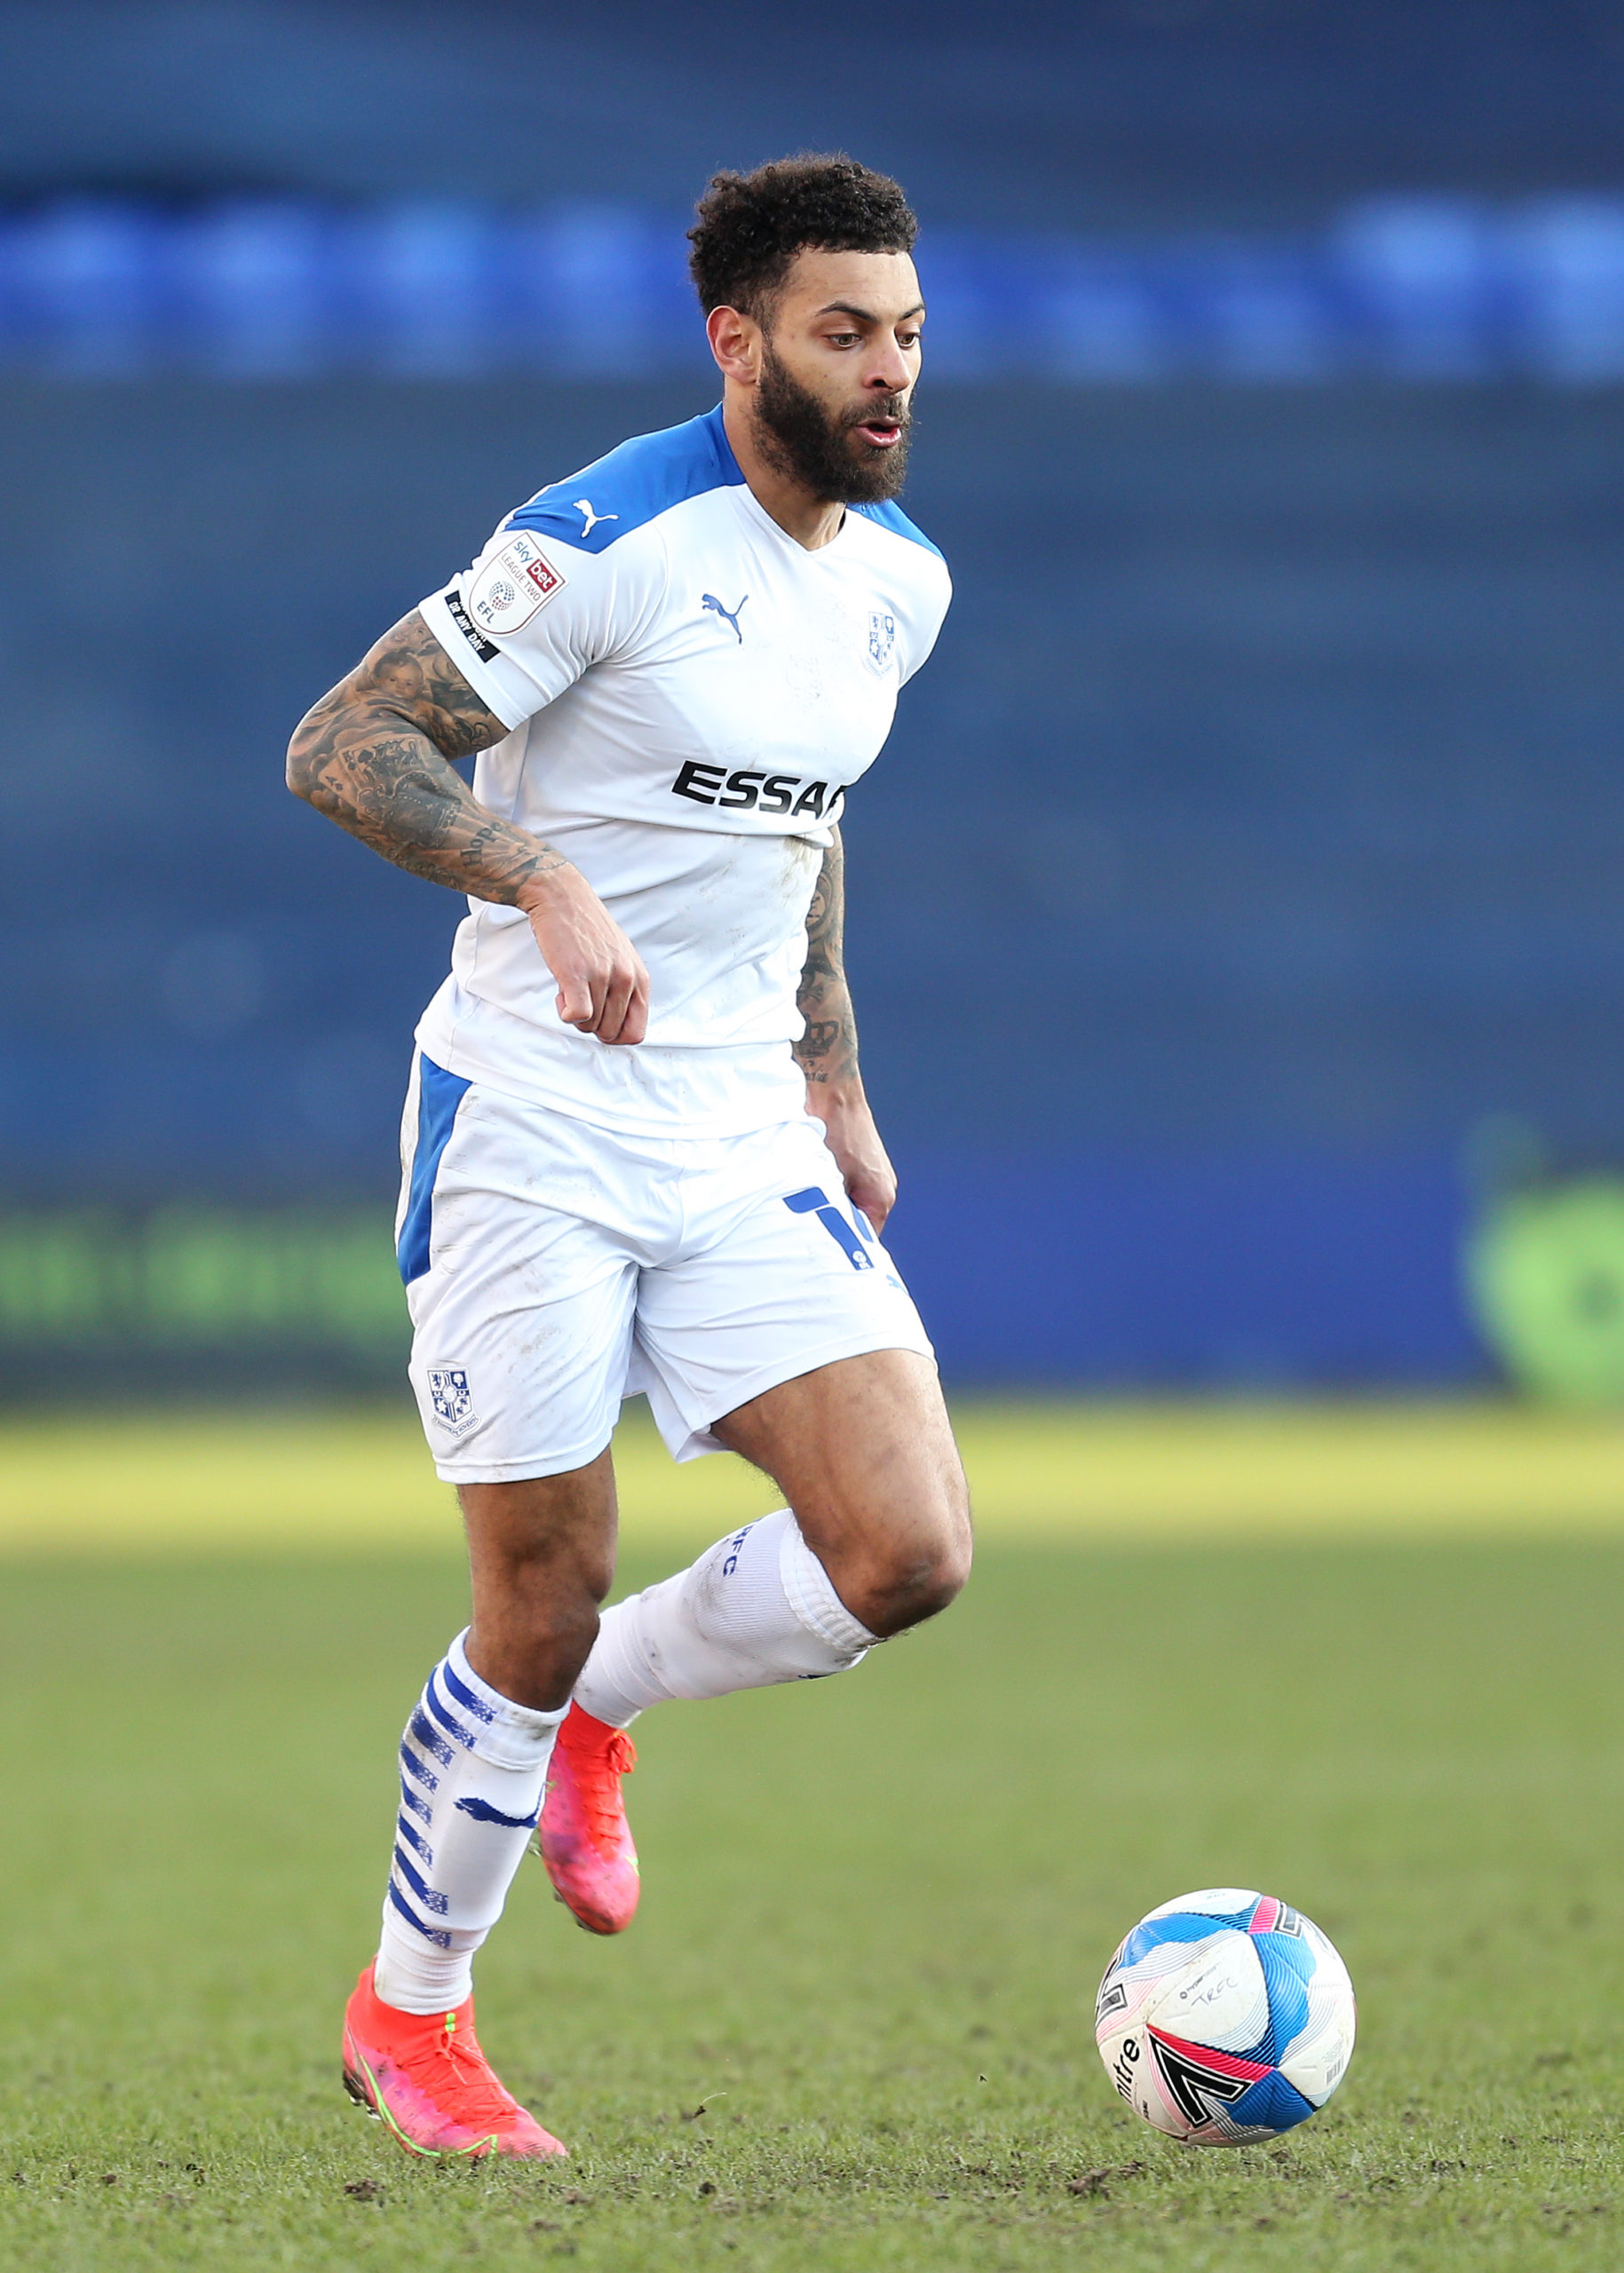 Tranmere Rovers v Crawley Town - Sky Bet League Two